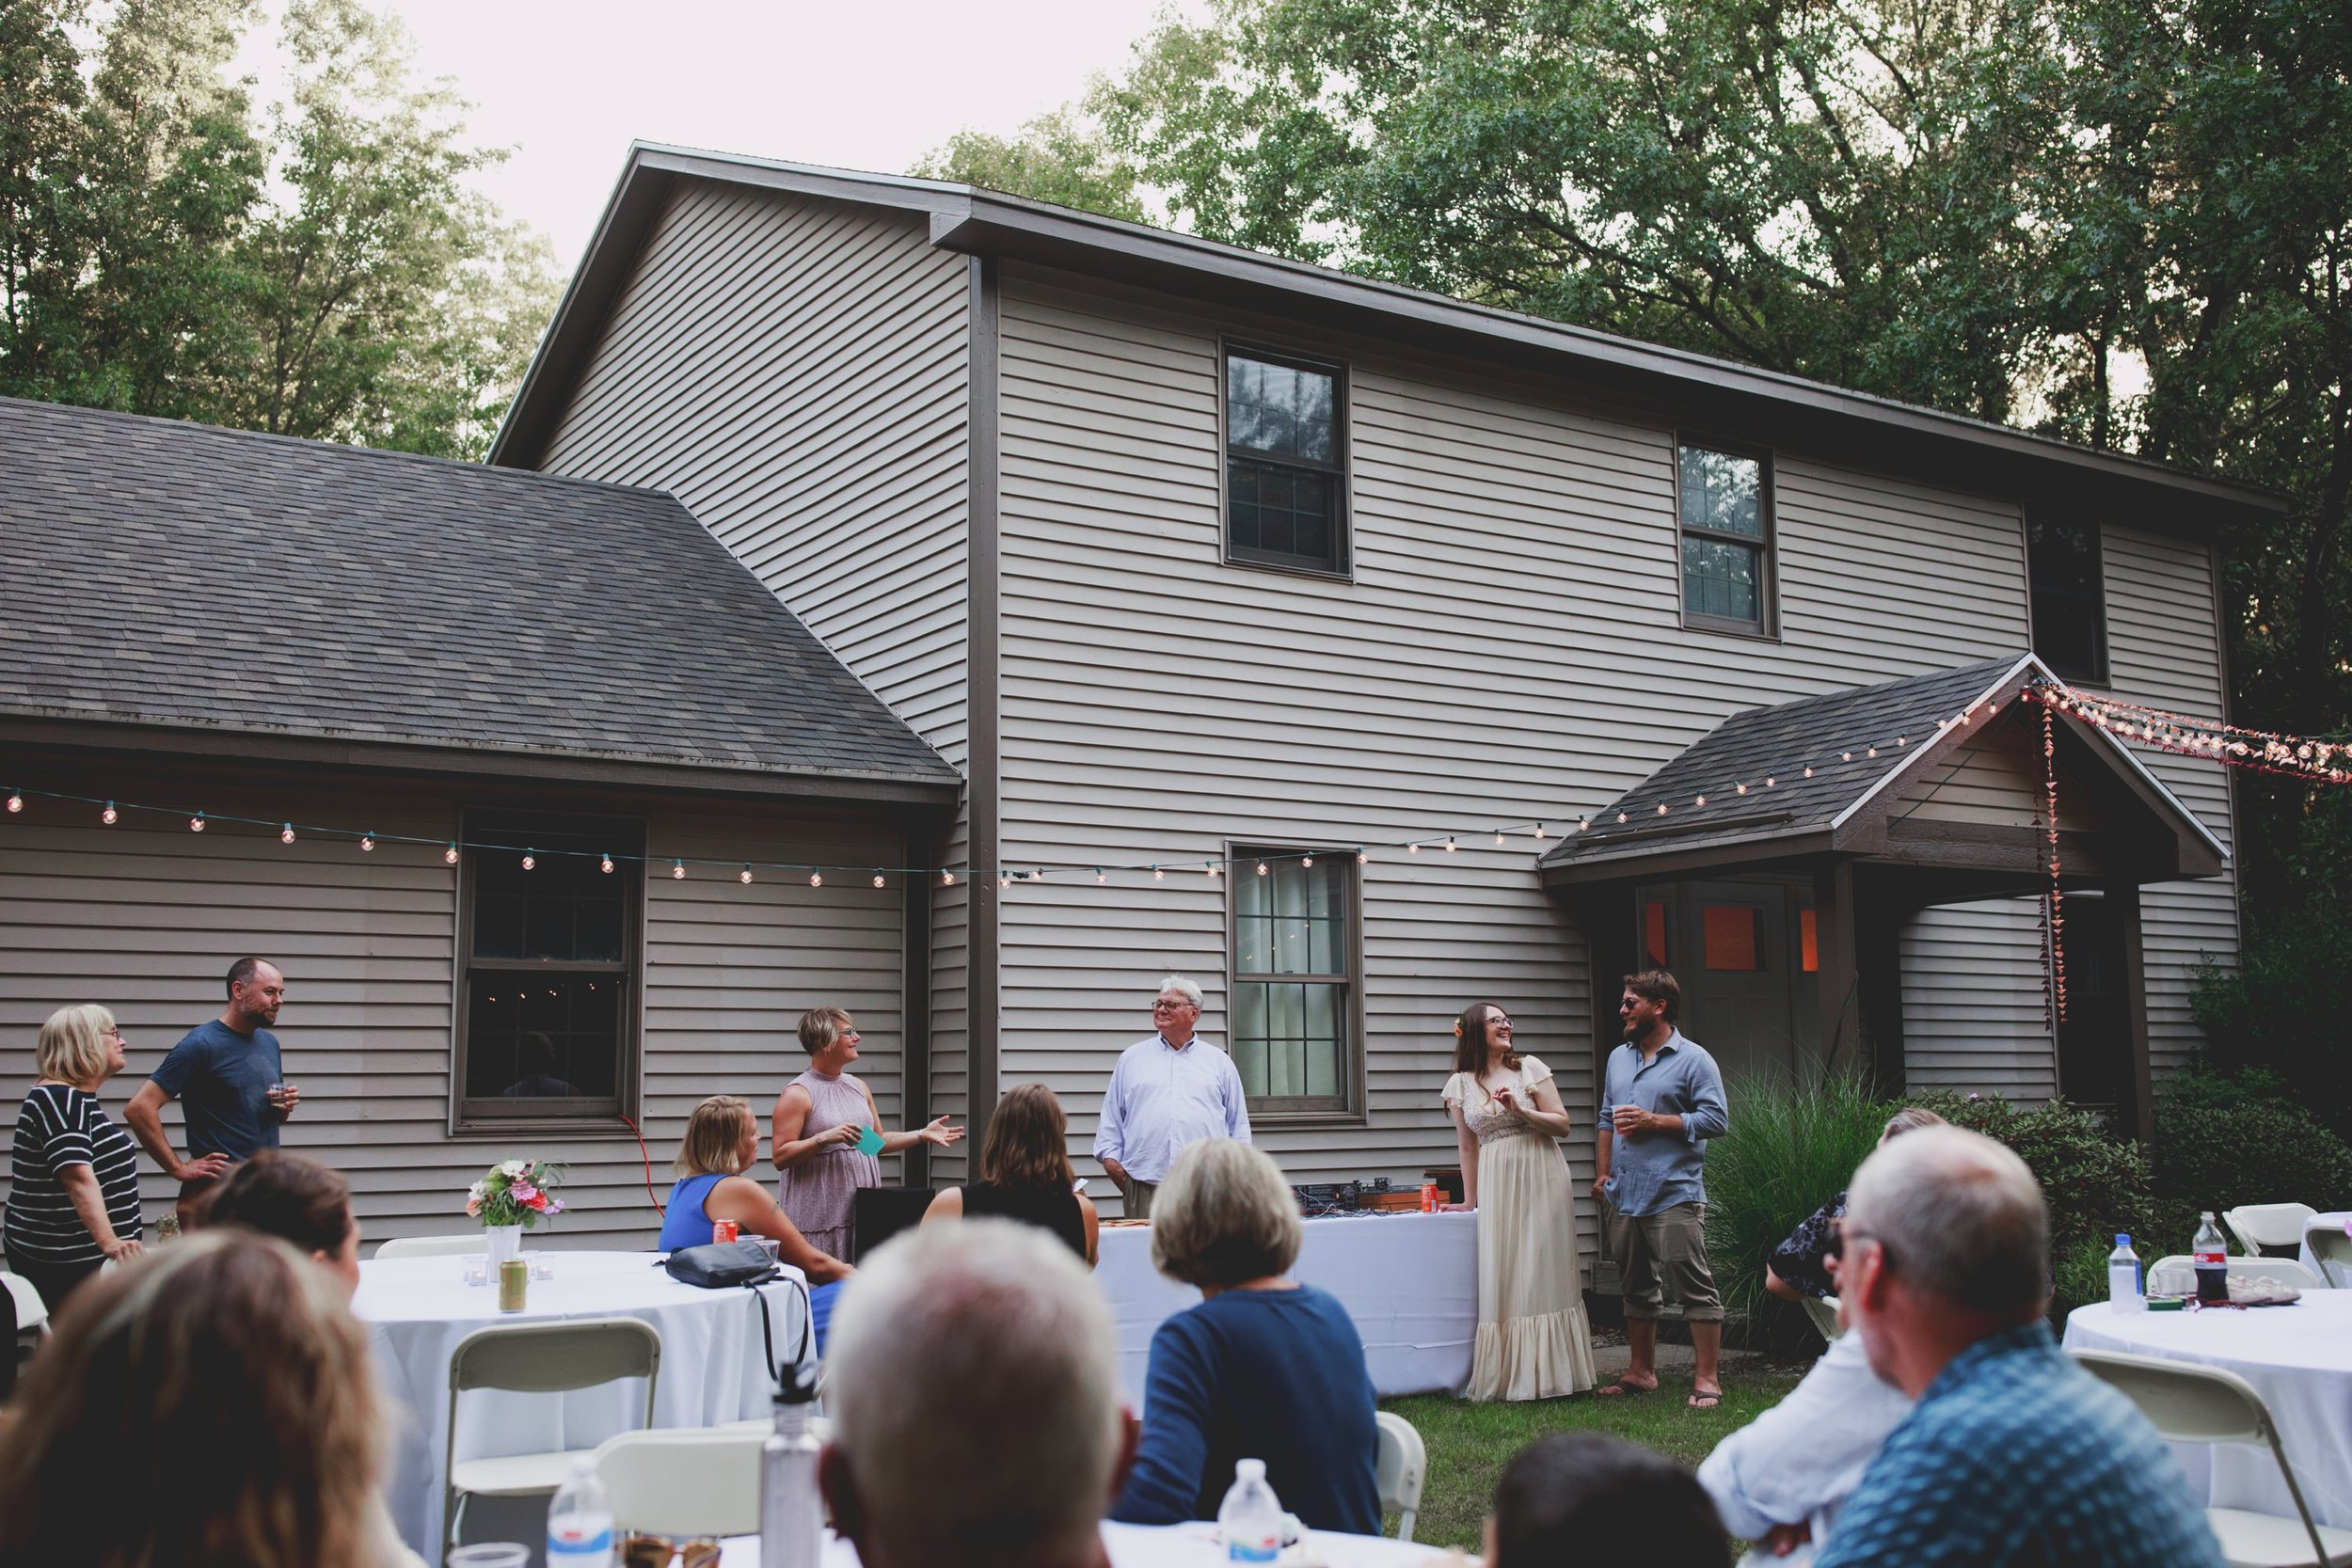 michigan_backyard_wedding_grand_rapids_117.jpg